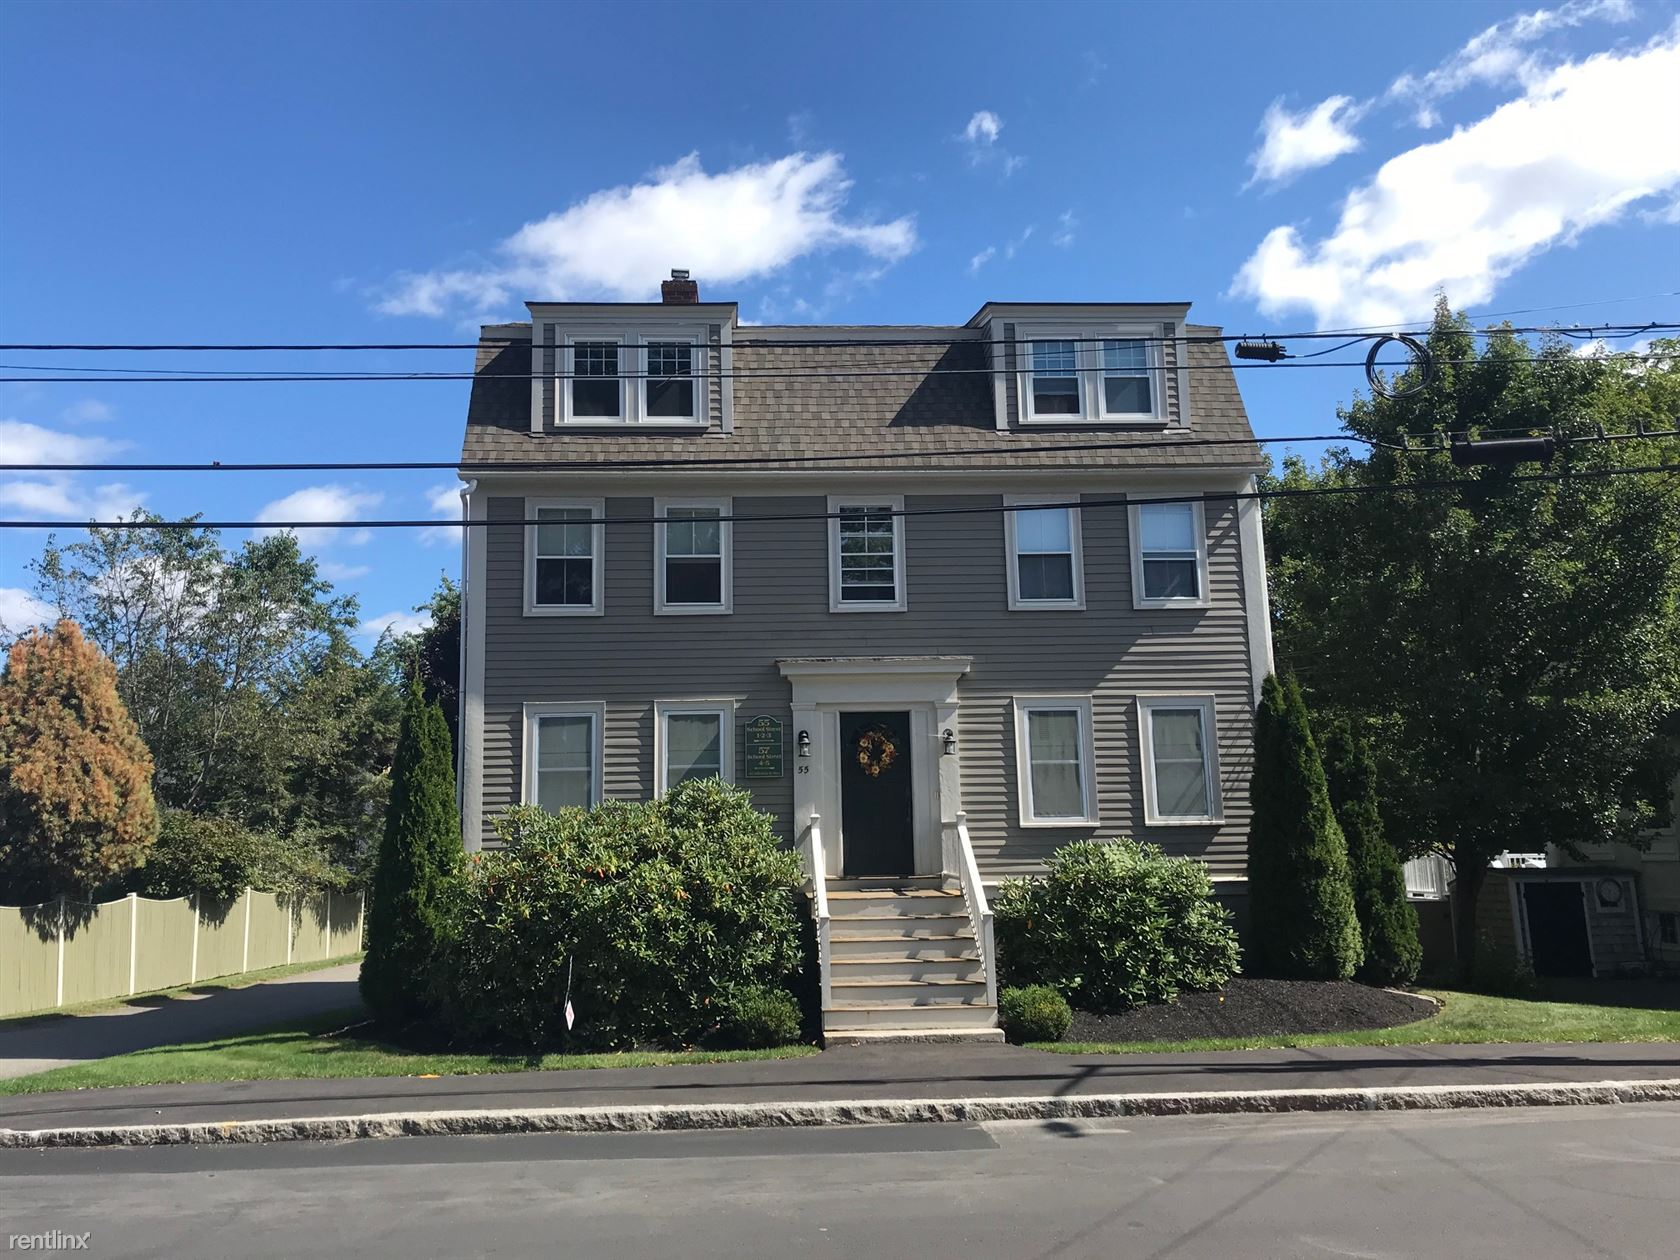 55 School Street, Manchester-by-the-Sea, MA - $2,400